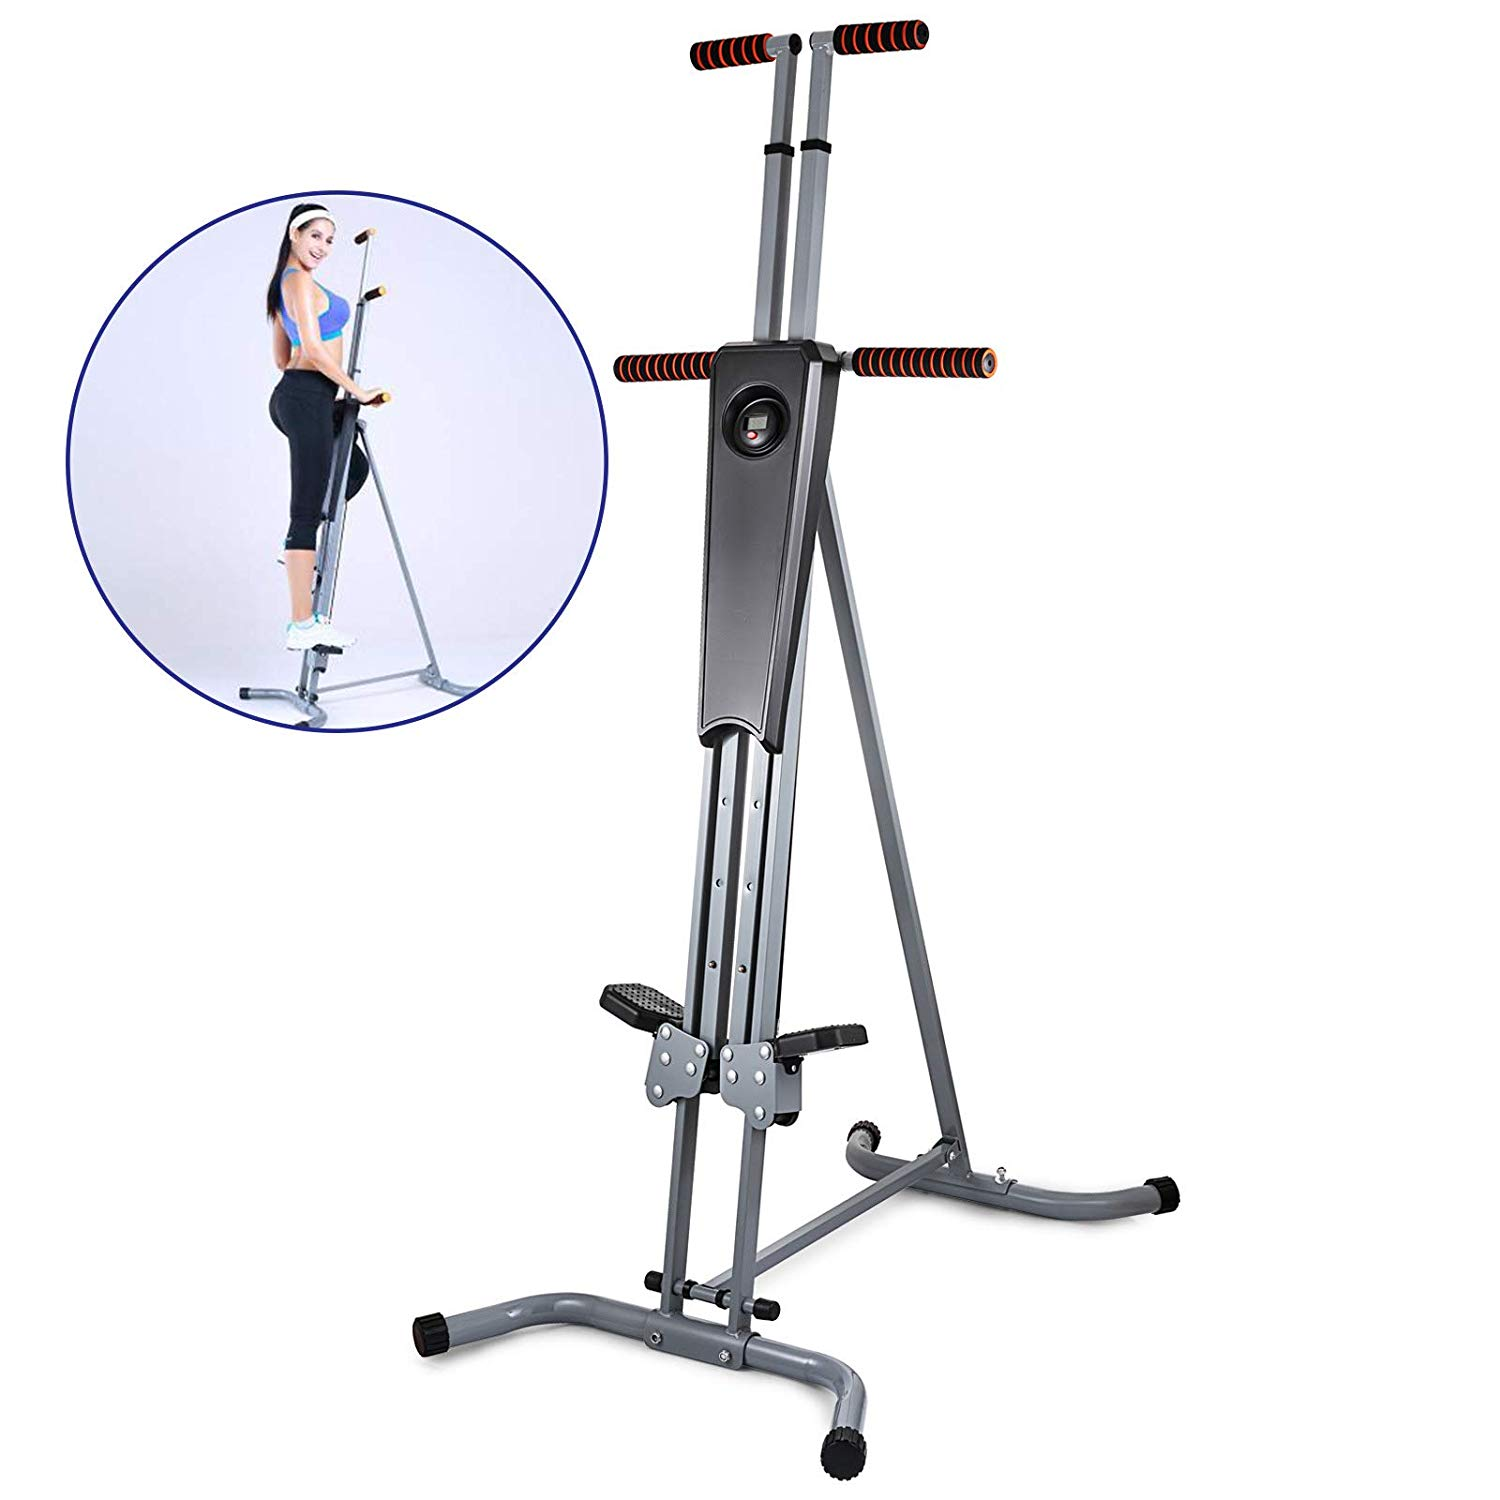 Cheap Gym Cardio Machine Names Find Gym Cardio Machine Names Deals On Line At Alibaba Com